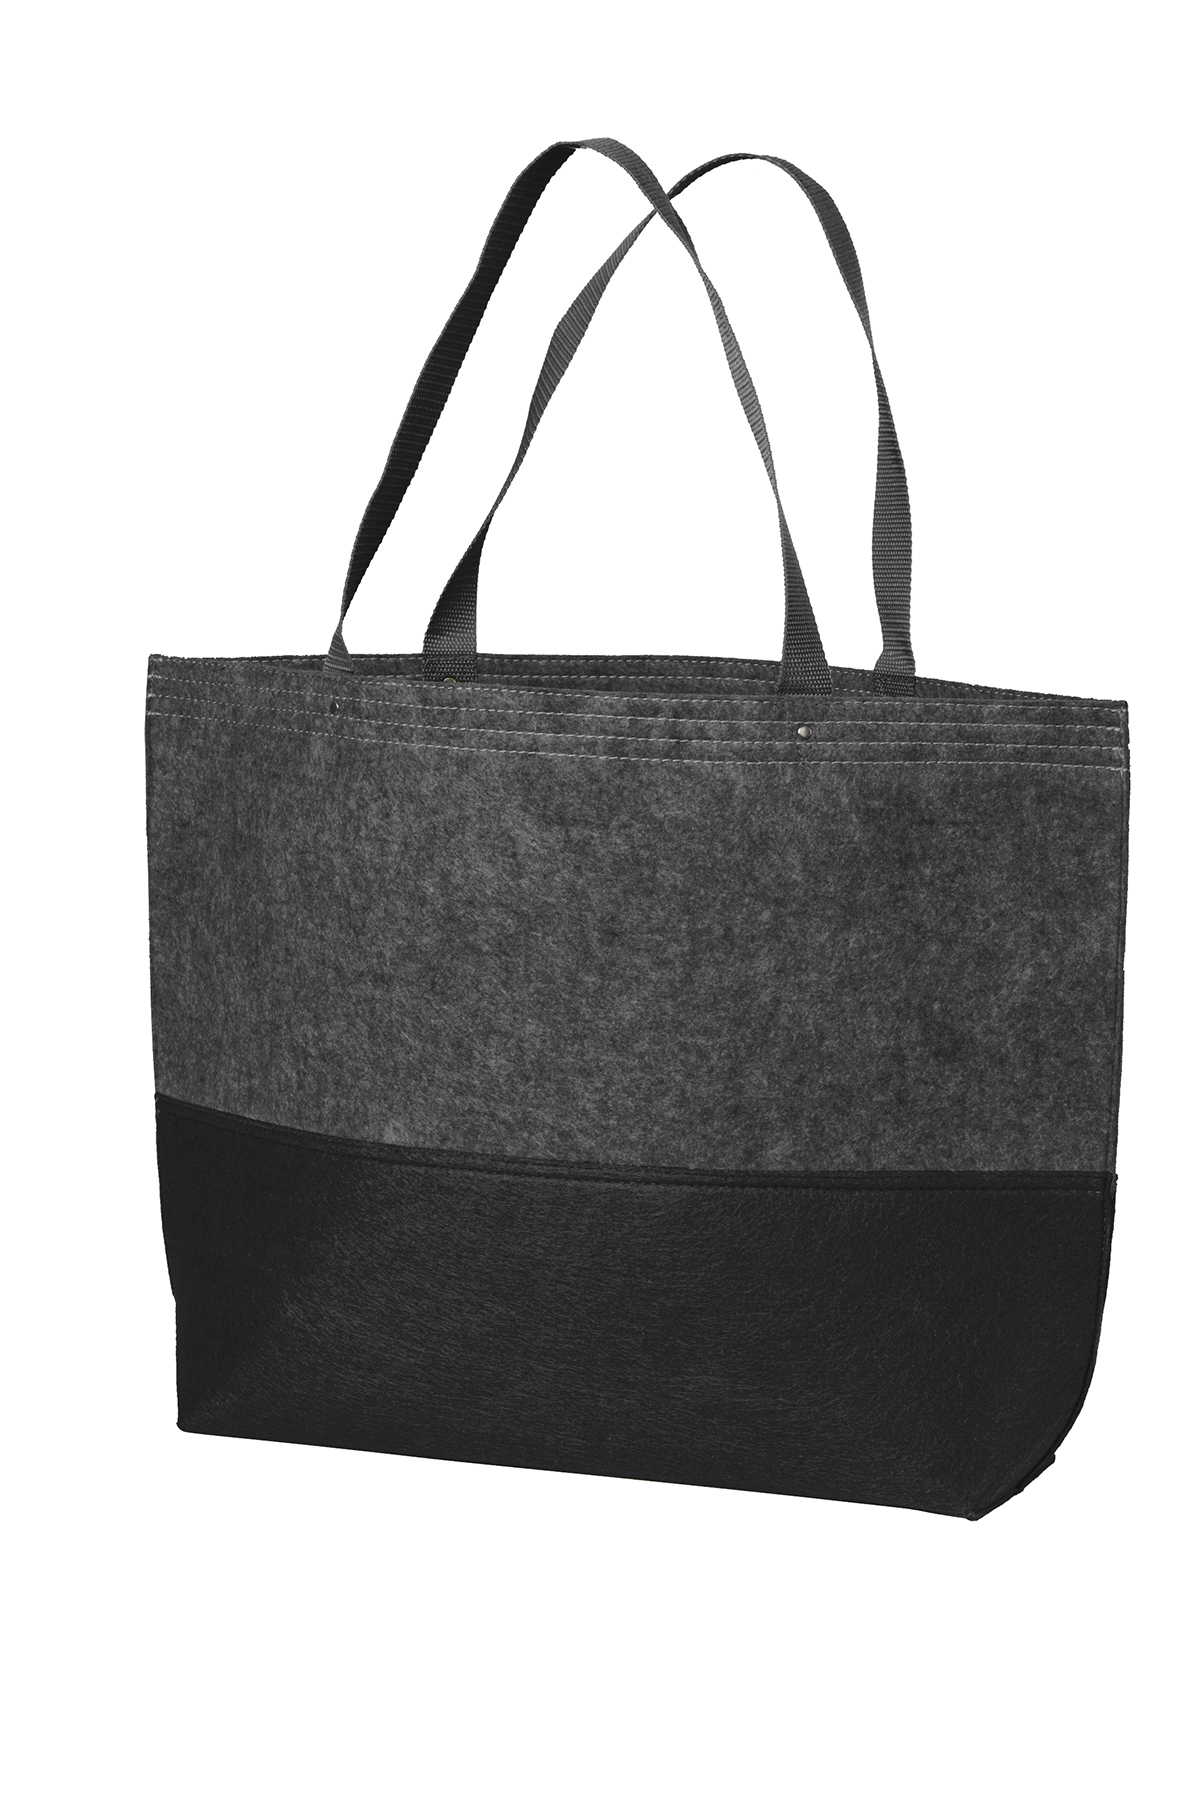 Port Authority BG402L Large Felt Tote